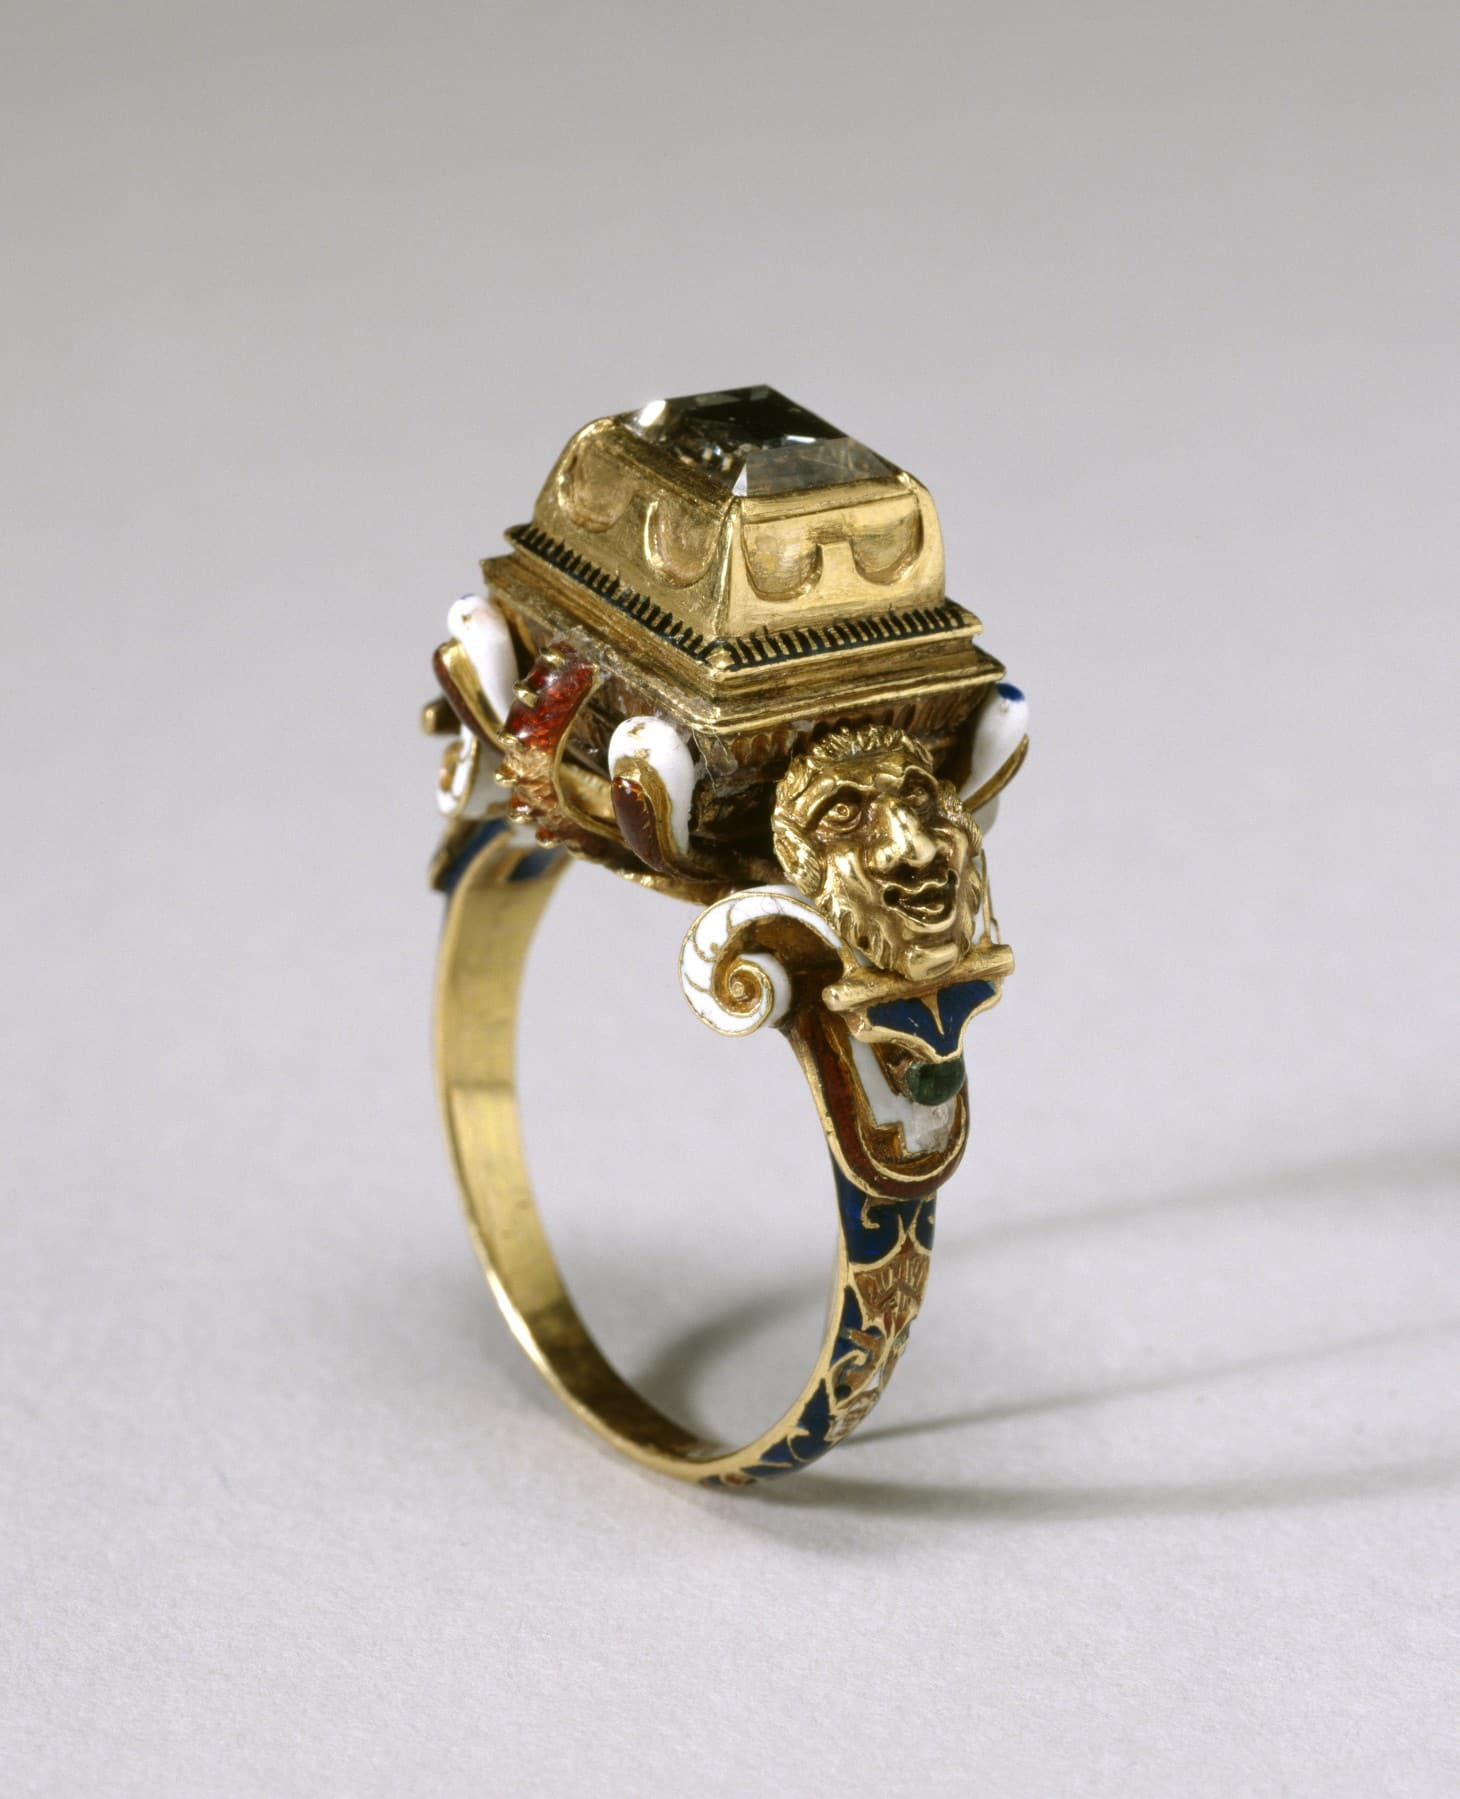 Renaissance Table Cut Diamond Ring.jpg